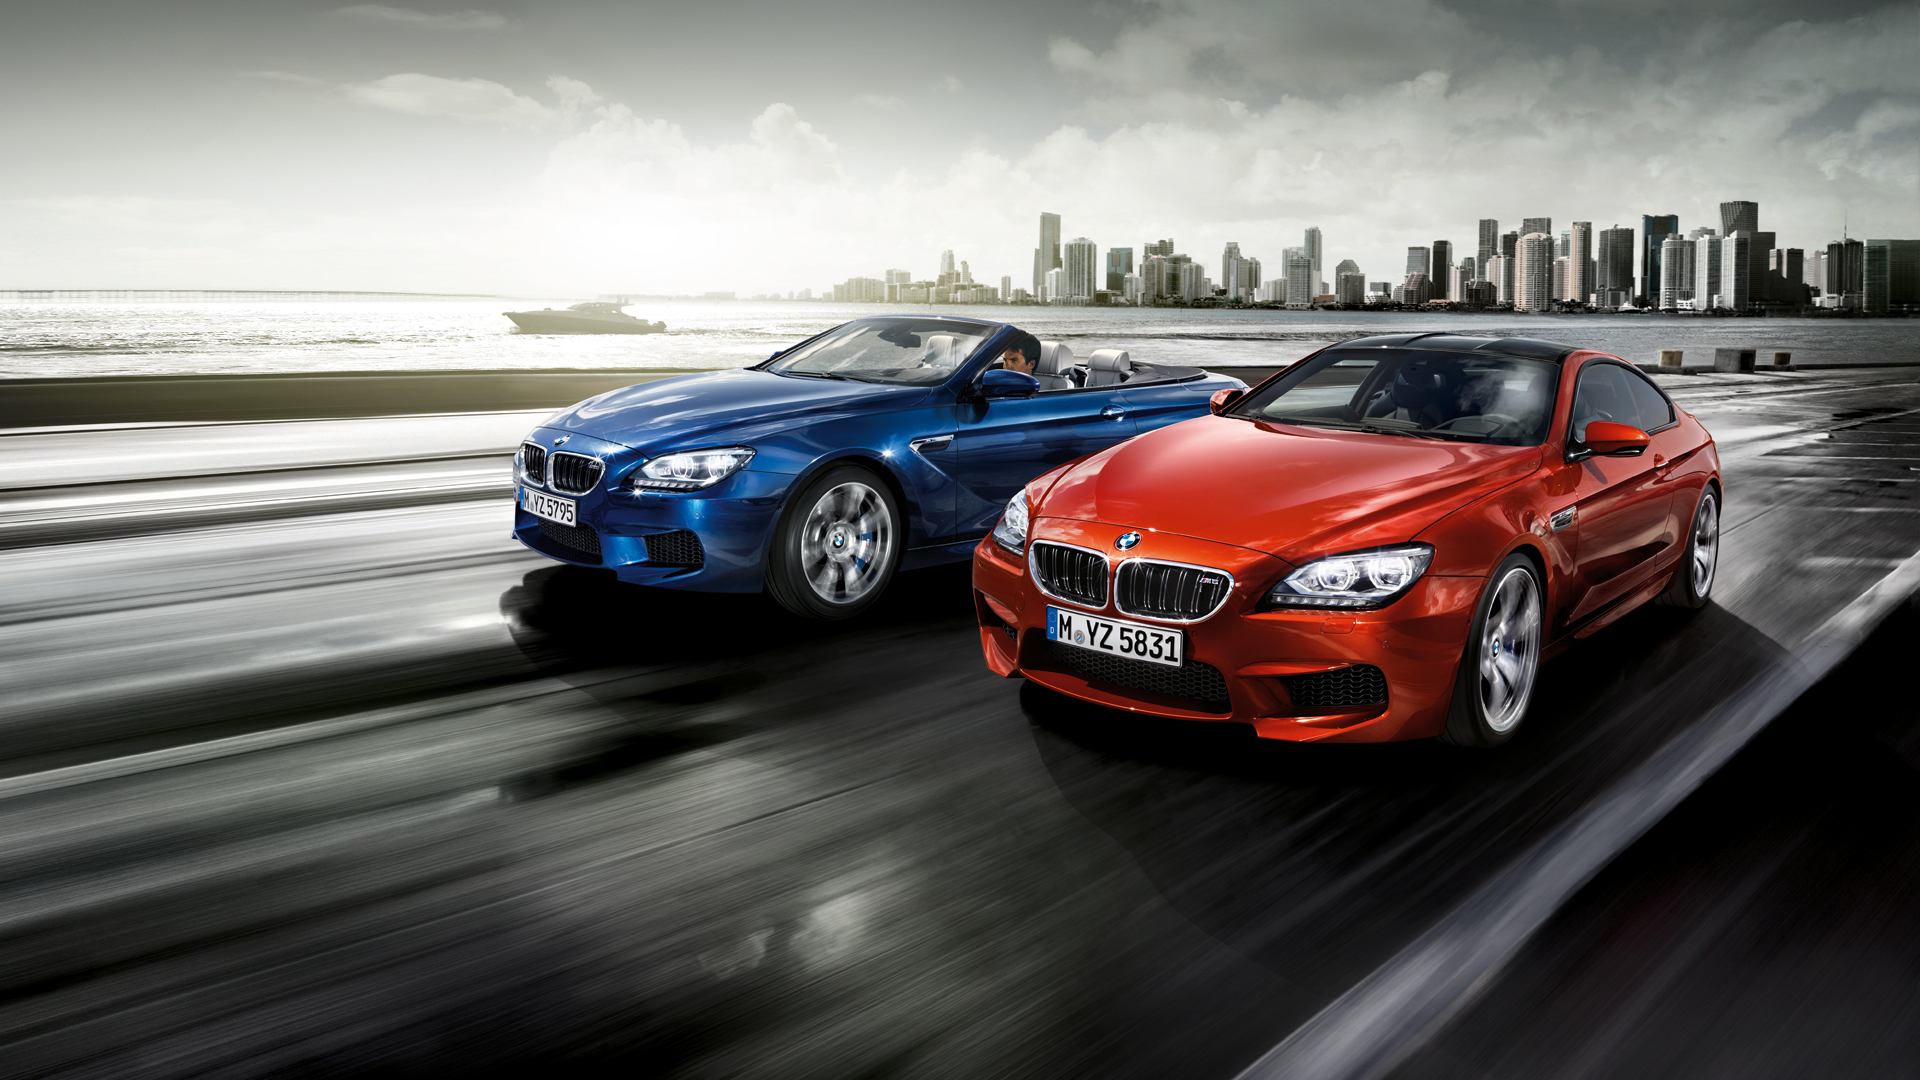 Sports Wallpapers Hd Wallpapers New Bmw M6 Coupe And Convertible